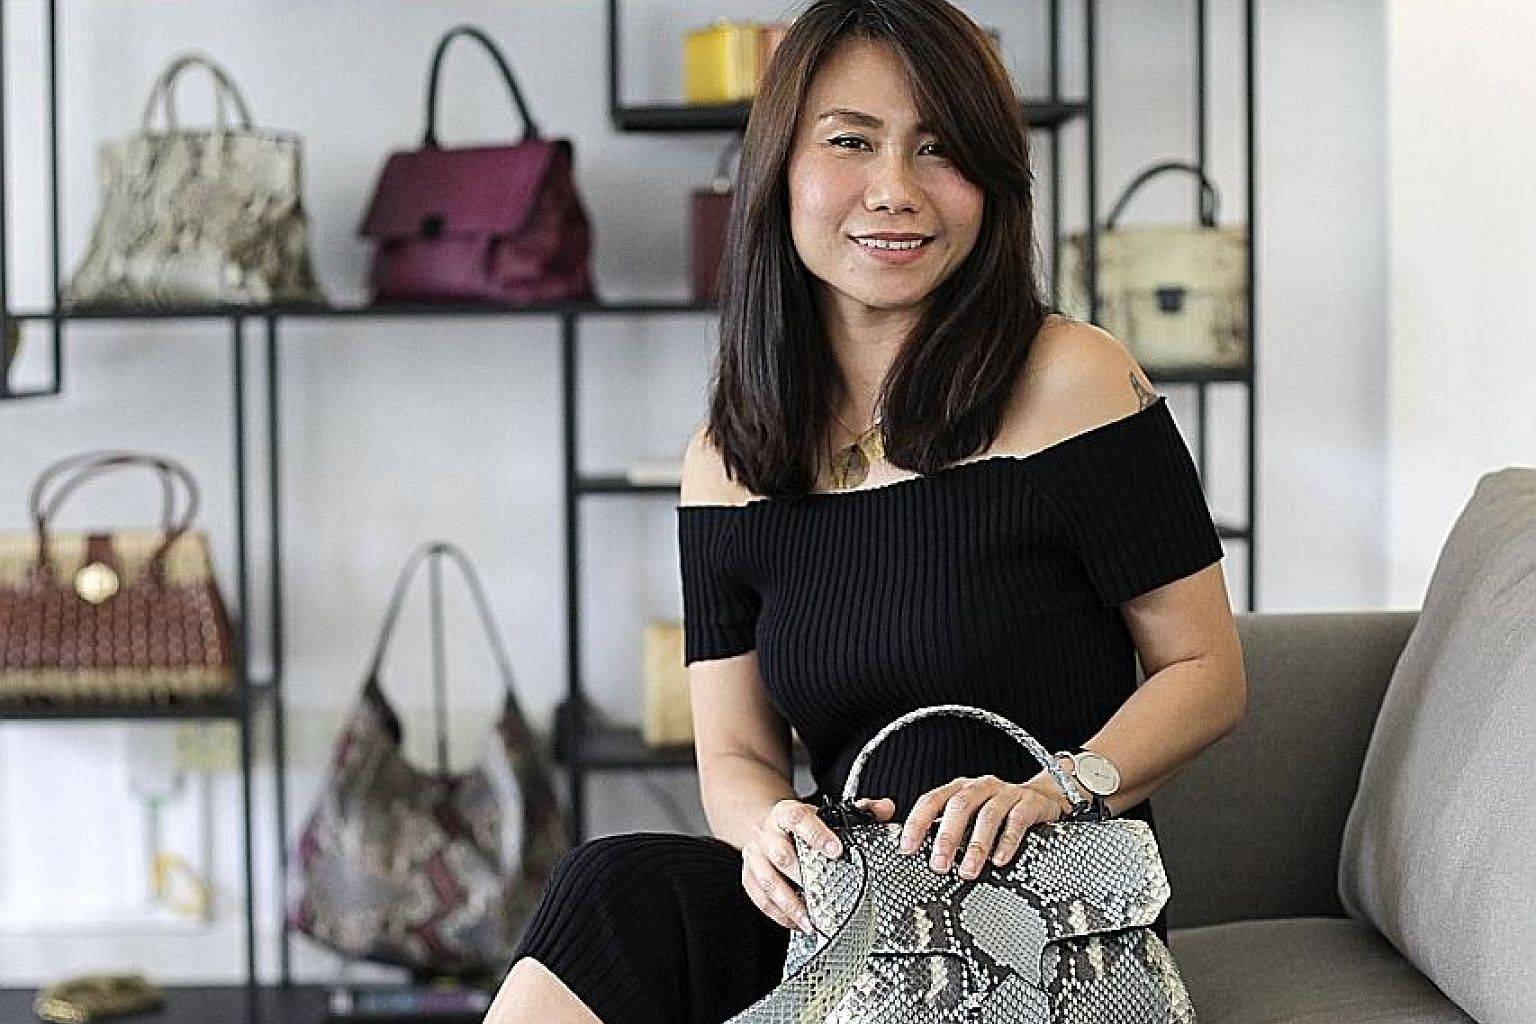 Bag designer Goh Ling Ling's showroom is where customers can browse her leather bags while sipping on a drink.